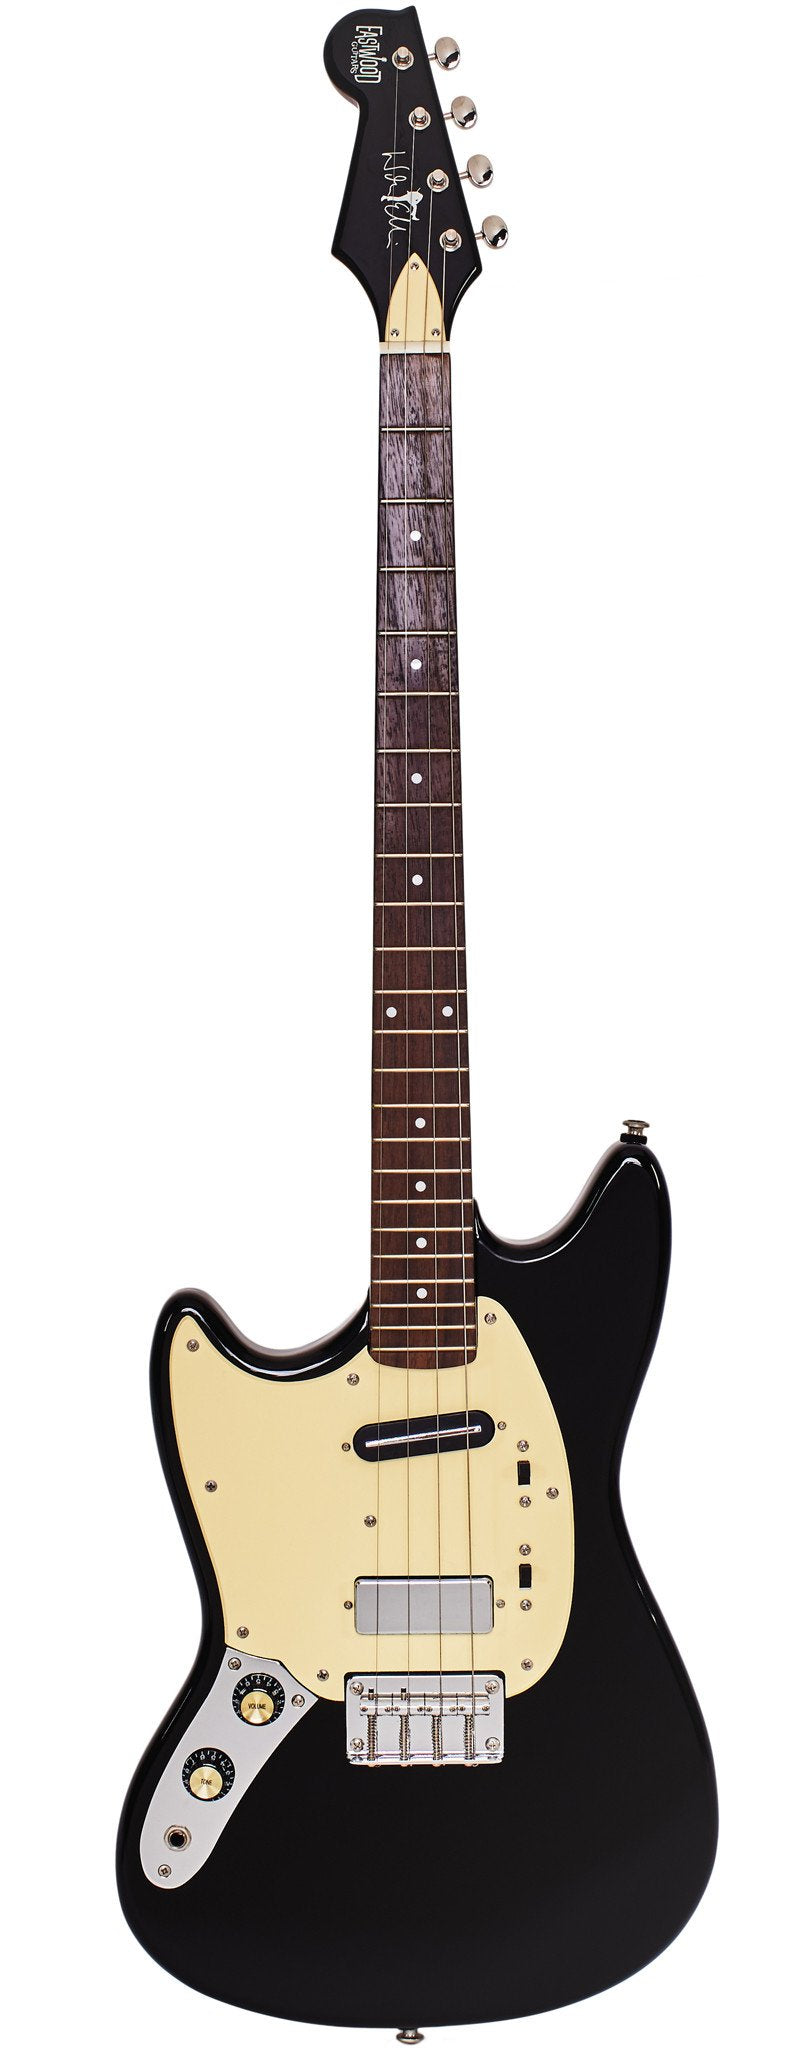 Eastwood Guitars Warren Ellis Tenor Baritone 2P Black Left Hand Full Front